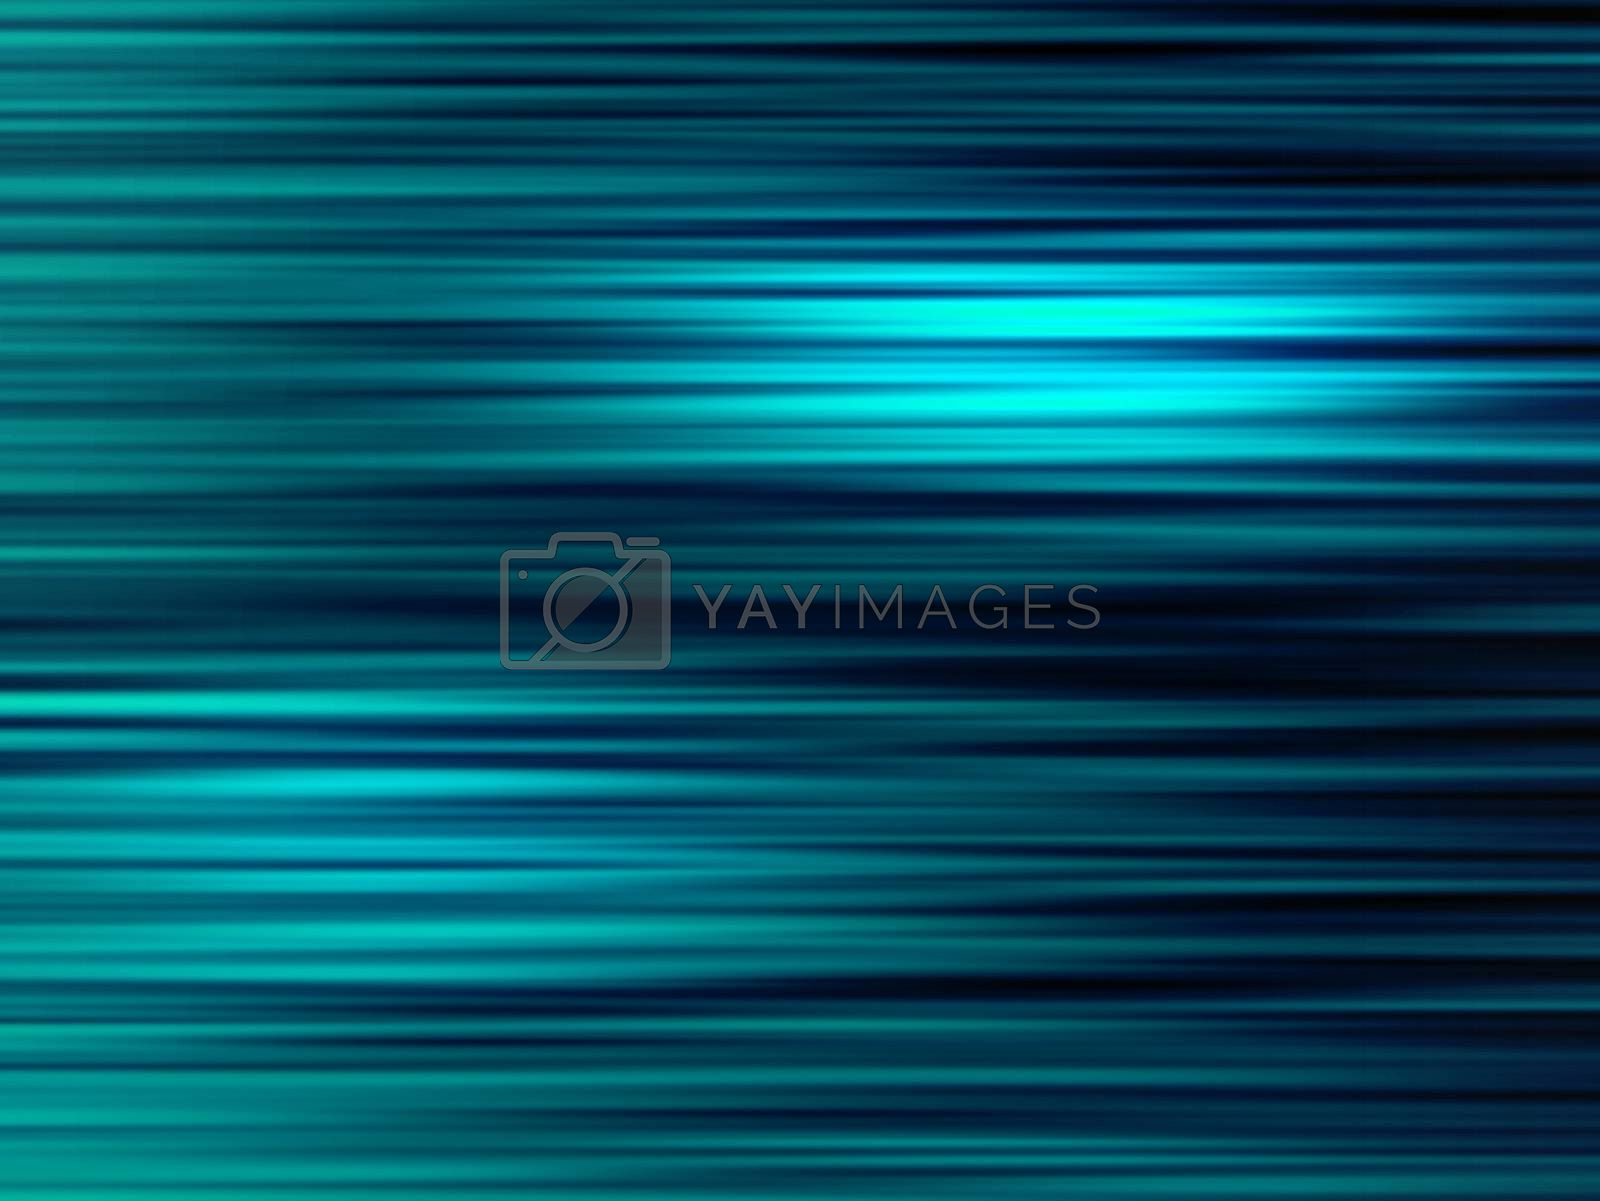 Blue and black texture, computer generated image